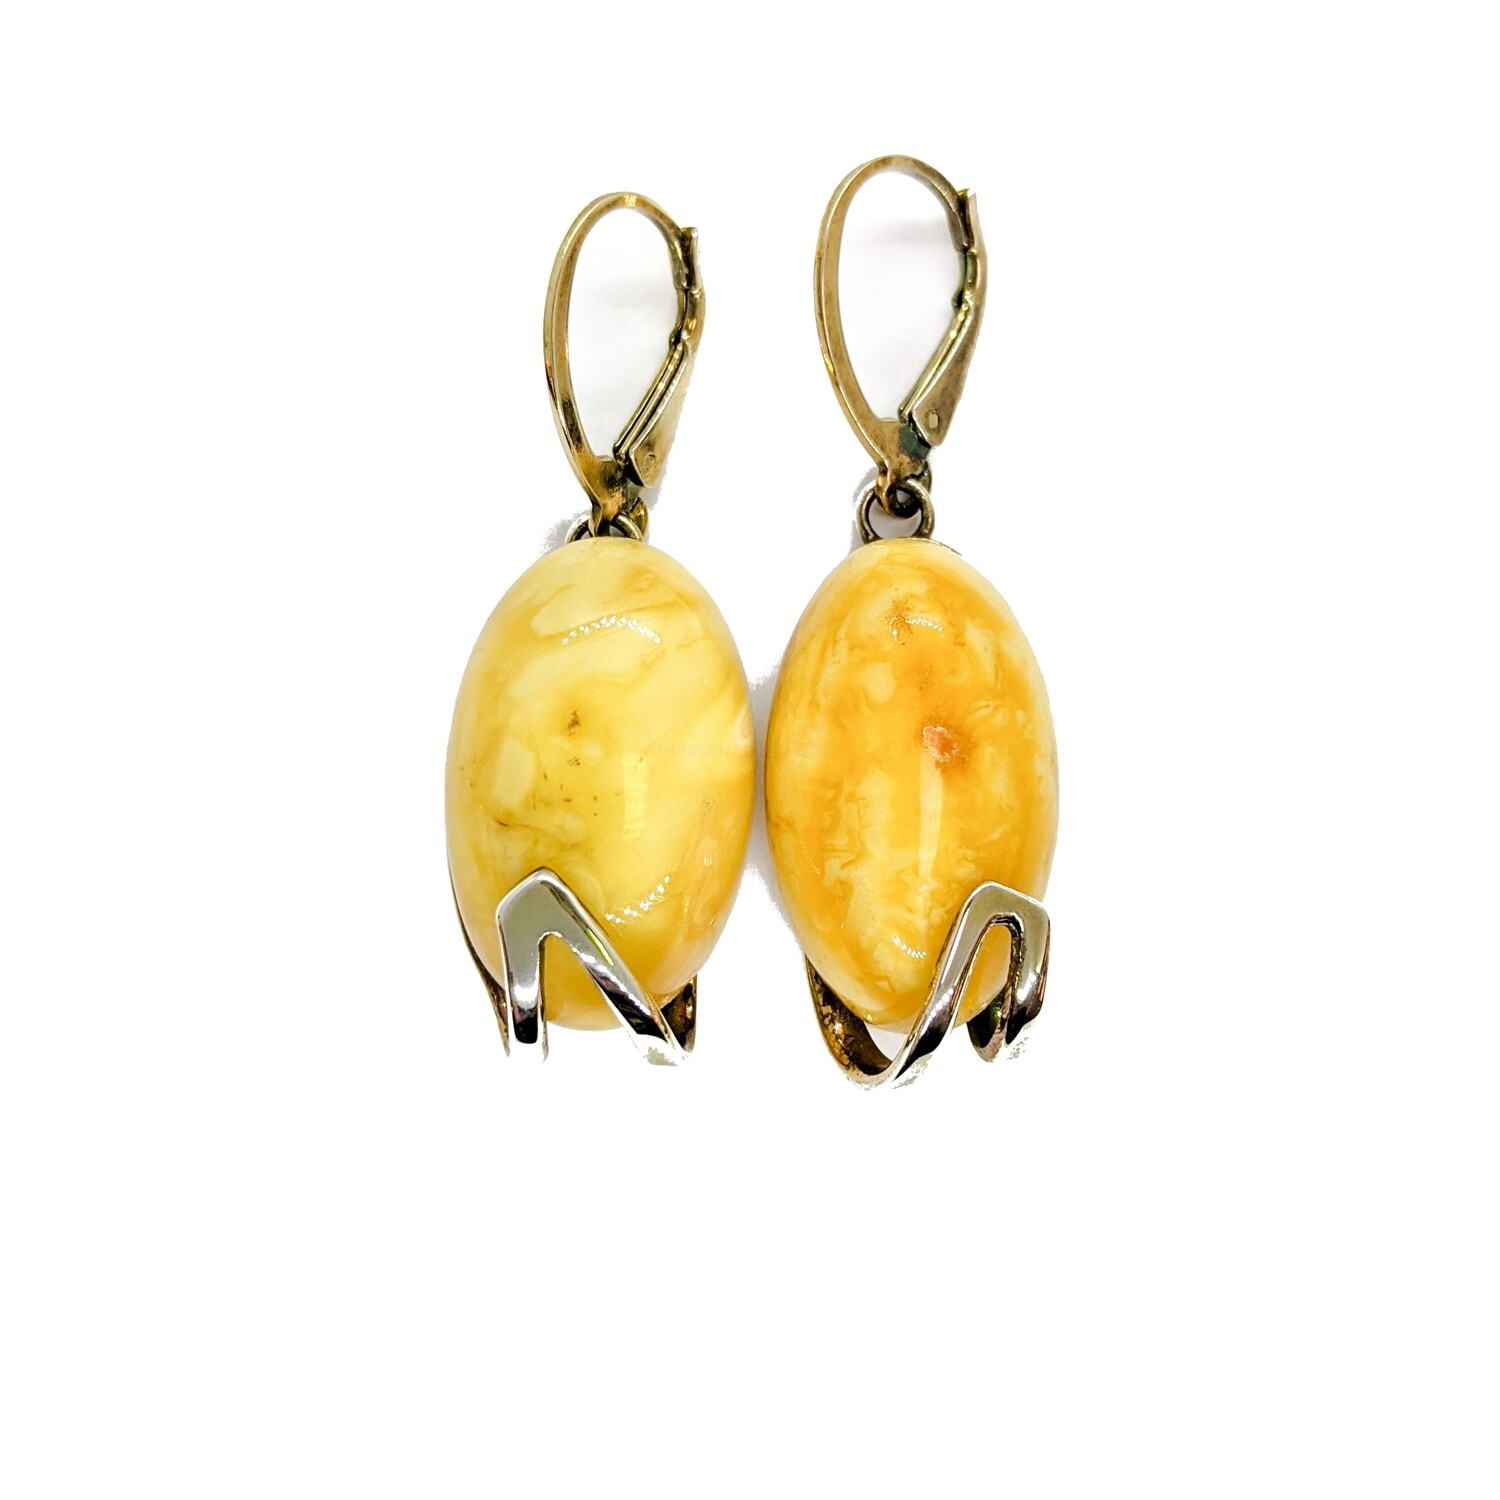 Silver gilded earrings with amber